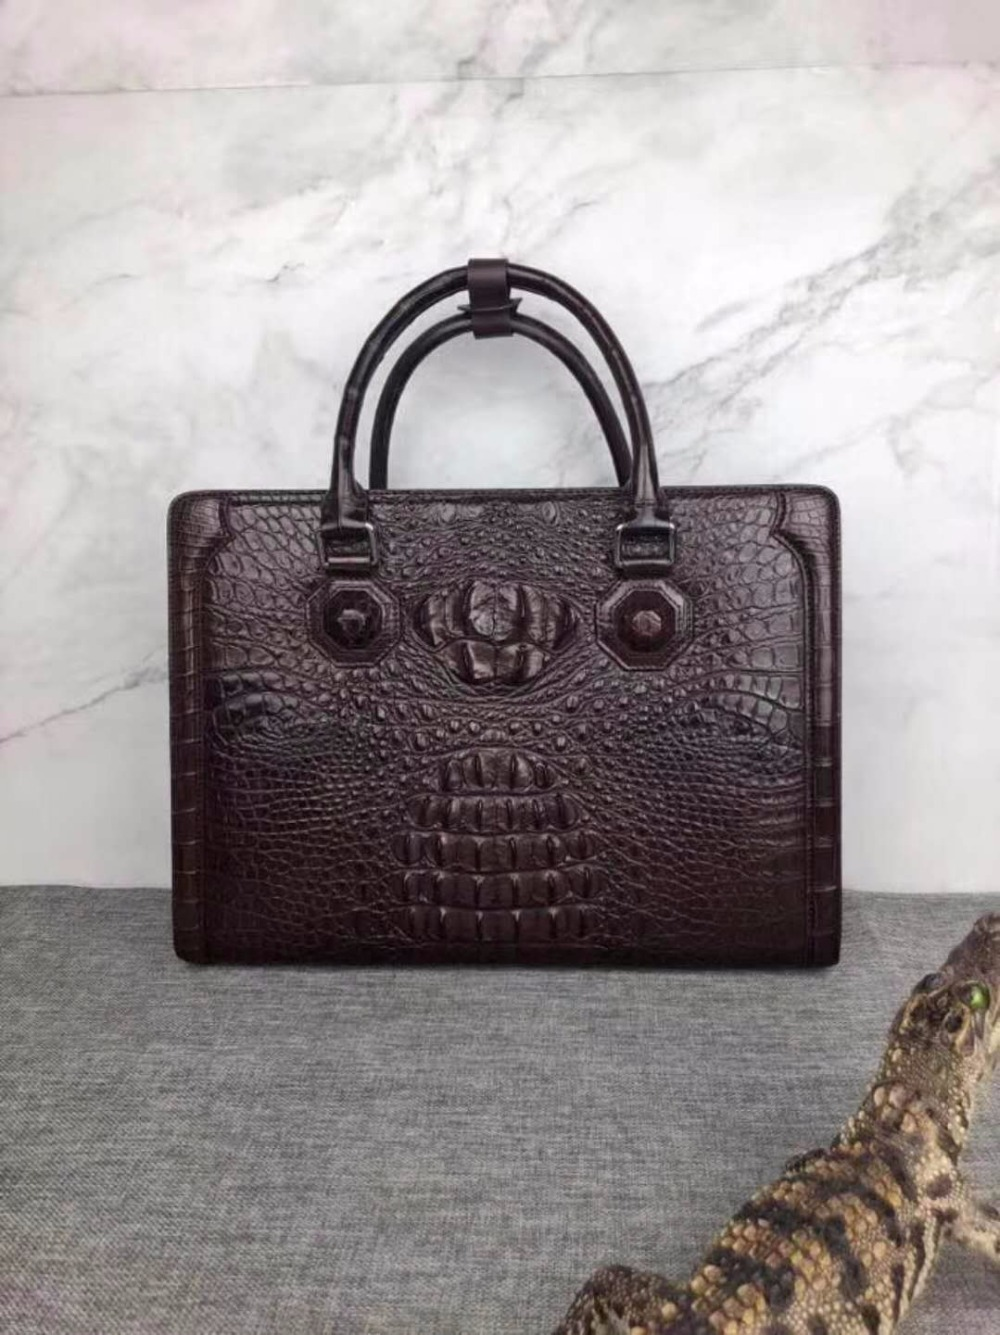 2018 Newly Design Men's Genuine/Real 100% Crocodile Skin Briefcase Laptop Bag, Crocodile Skin Business Men Bag Brown Color